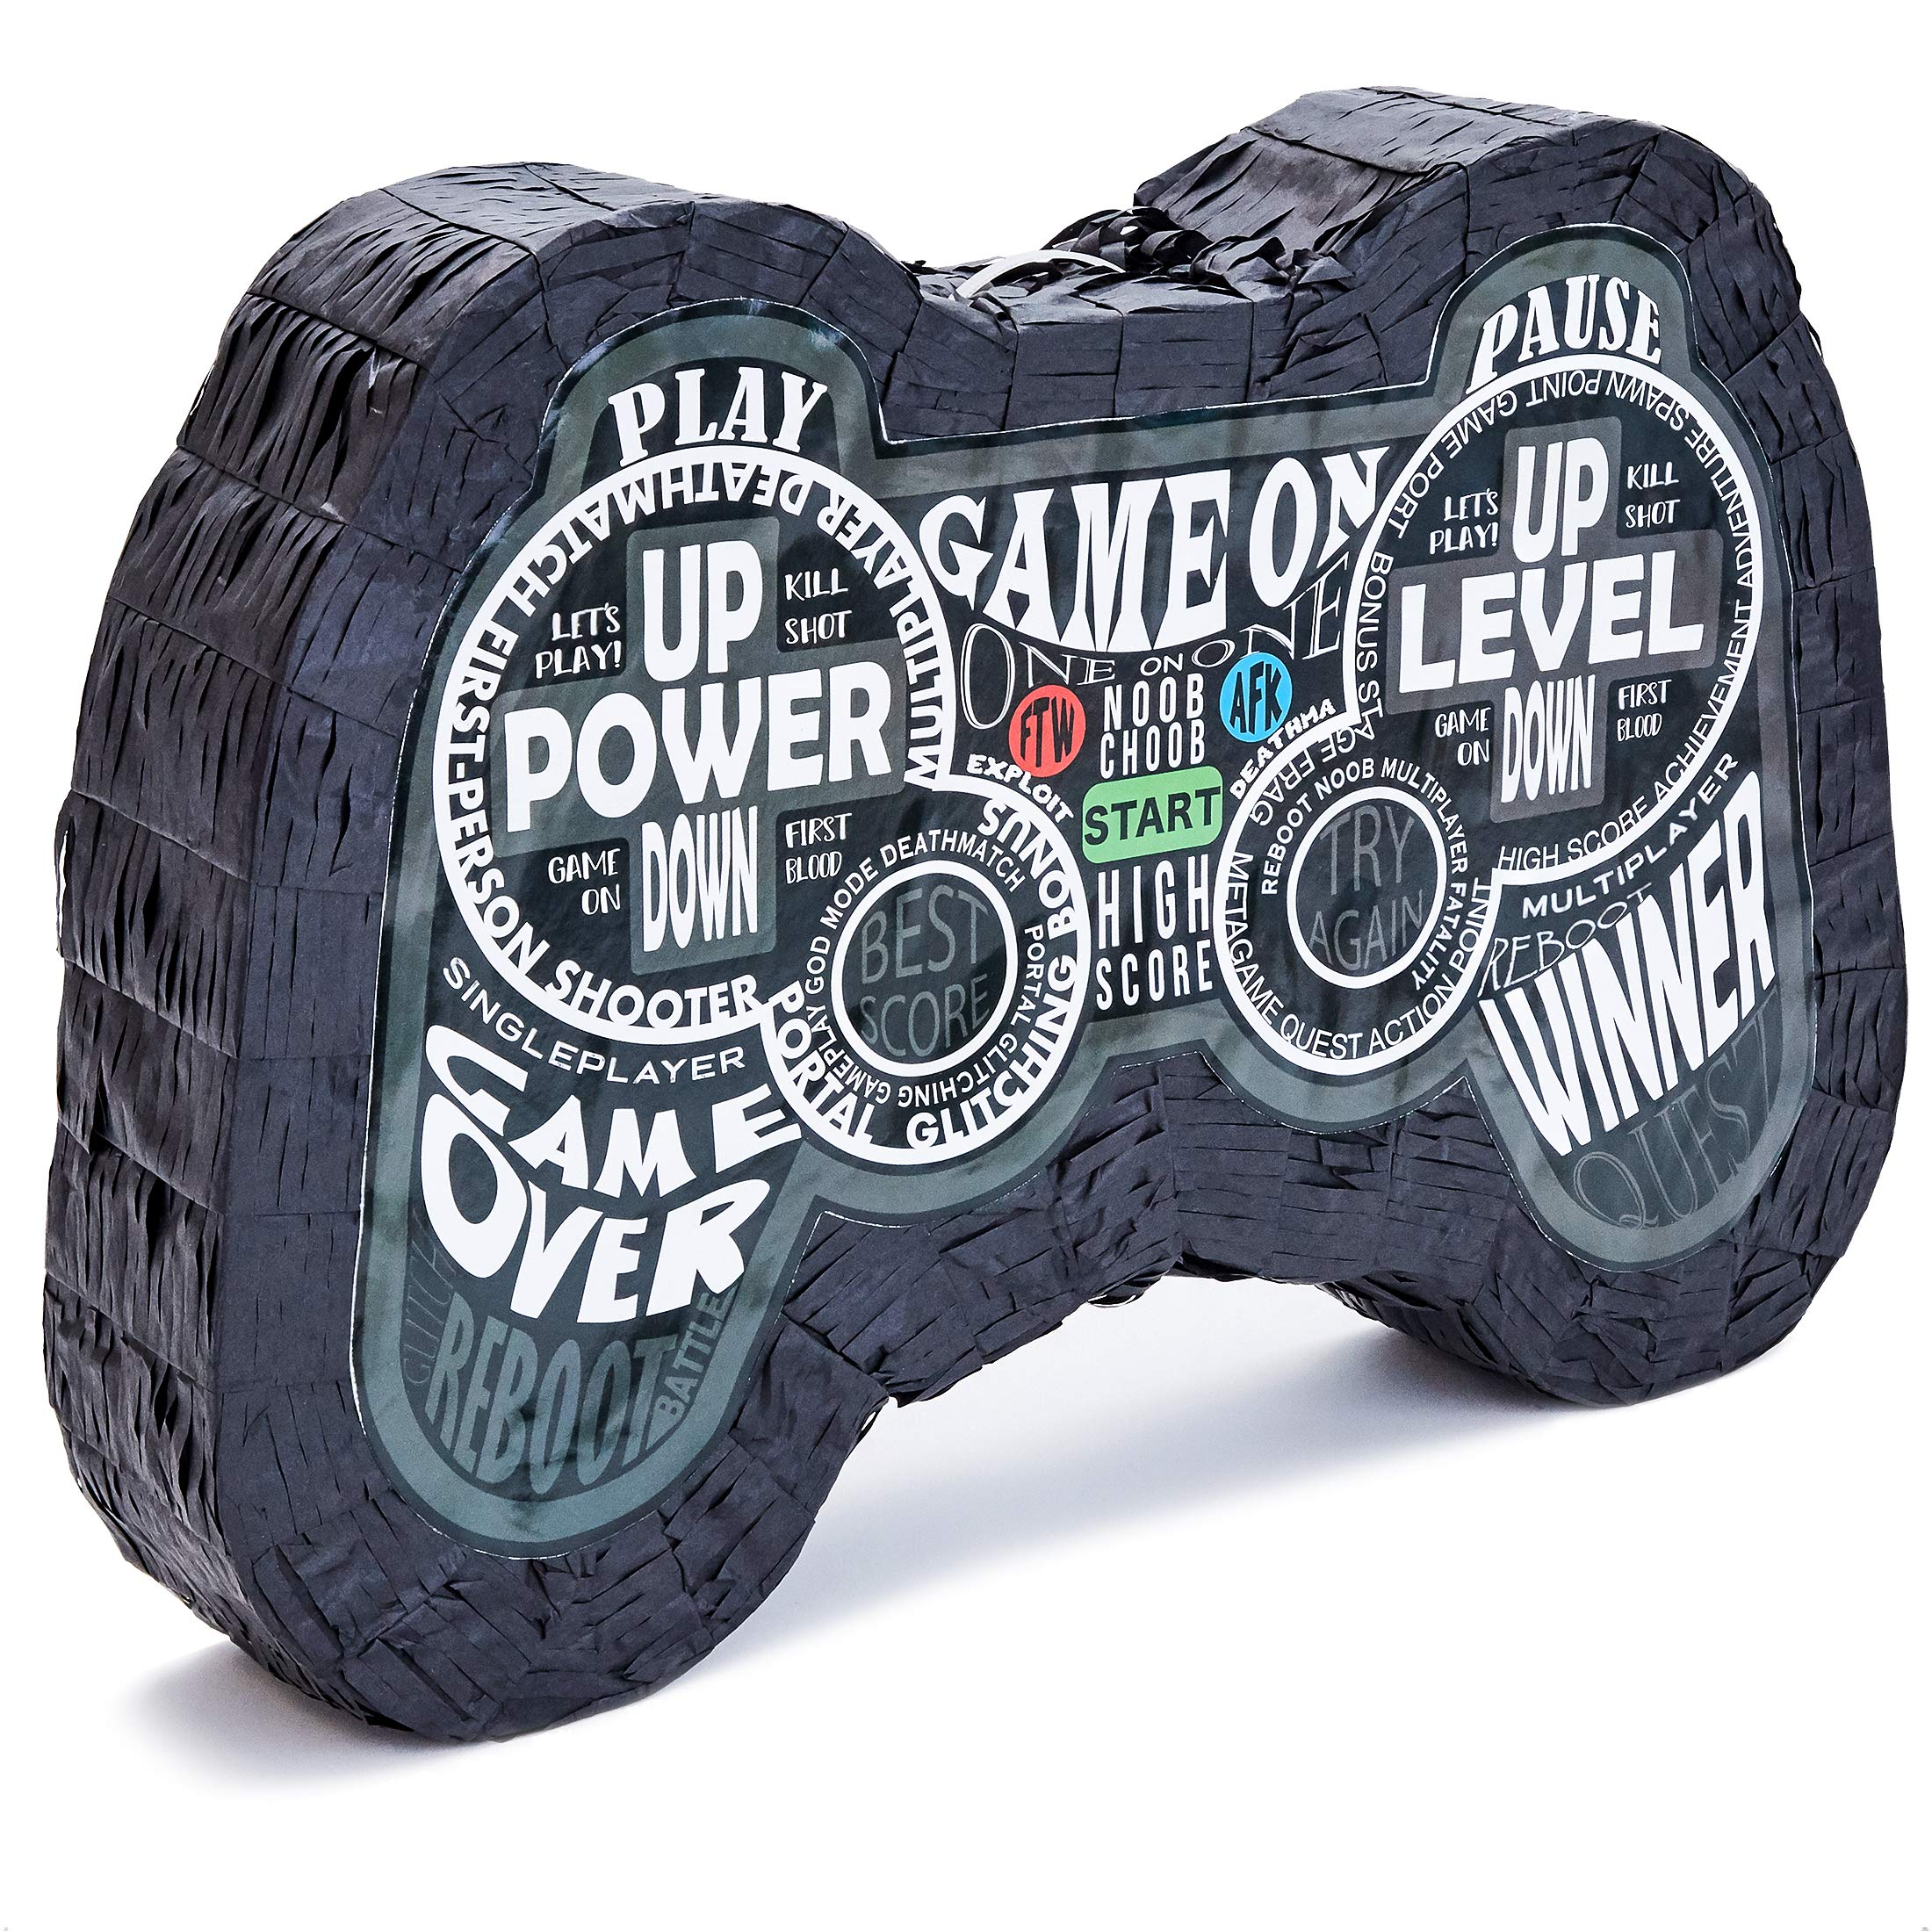 Juvale Small Video Game Controller Pinata for Birthday Gamer Party Decorations, 16.5 x 11 x 3 Inches by Juvale